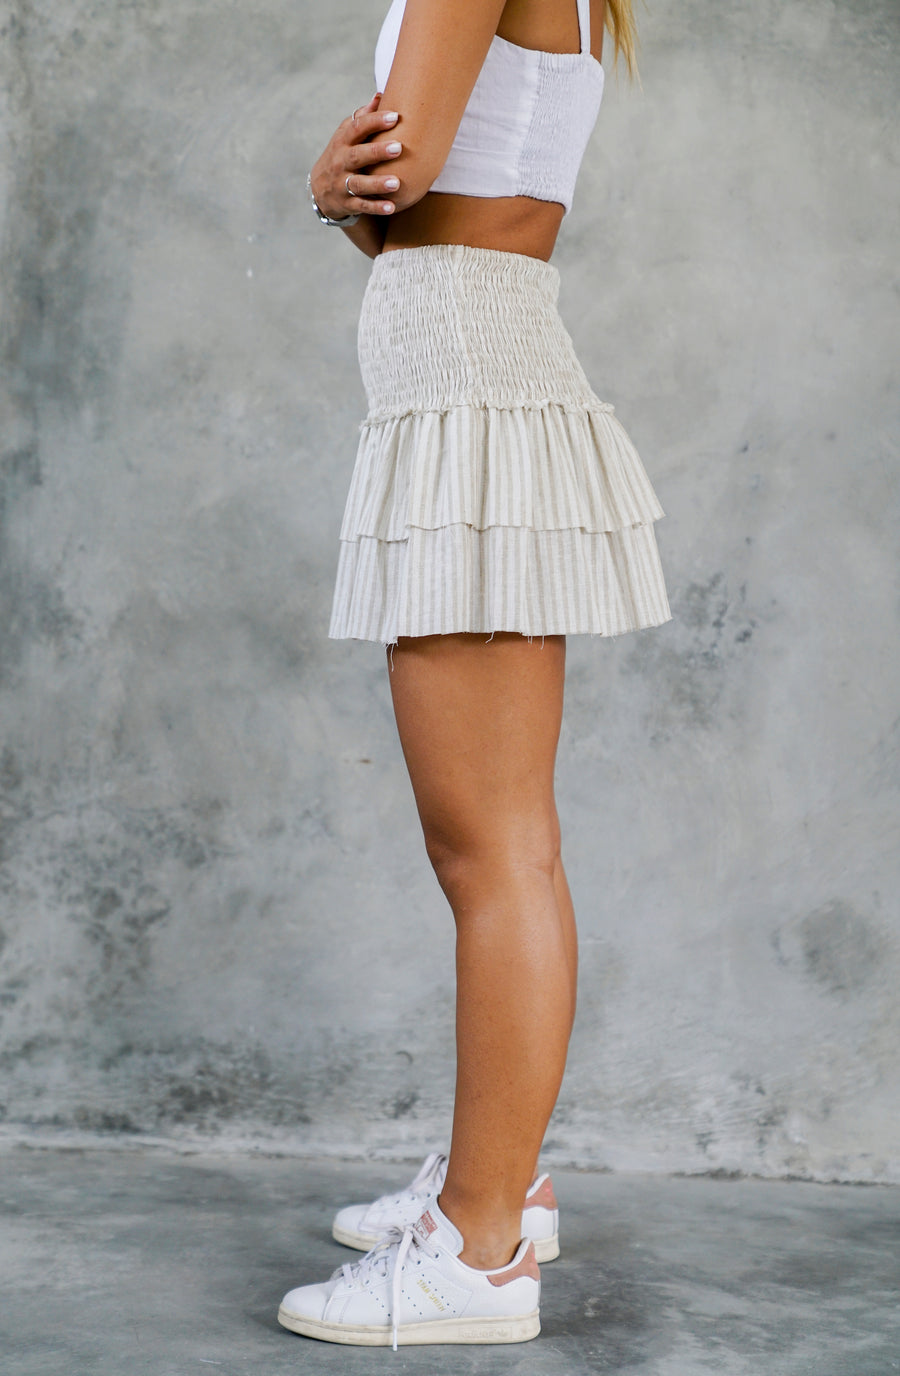 BootCamp Mini Skirt/Top